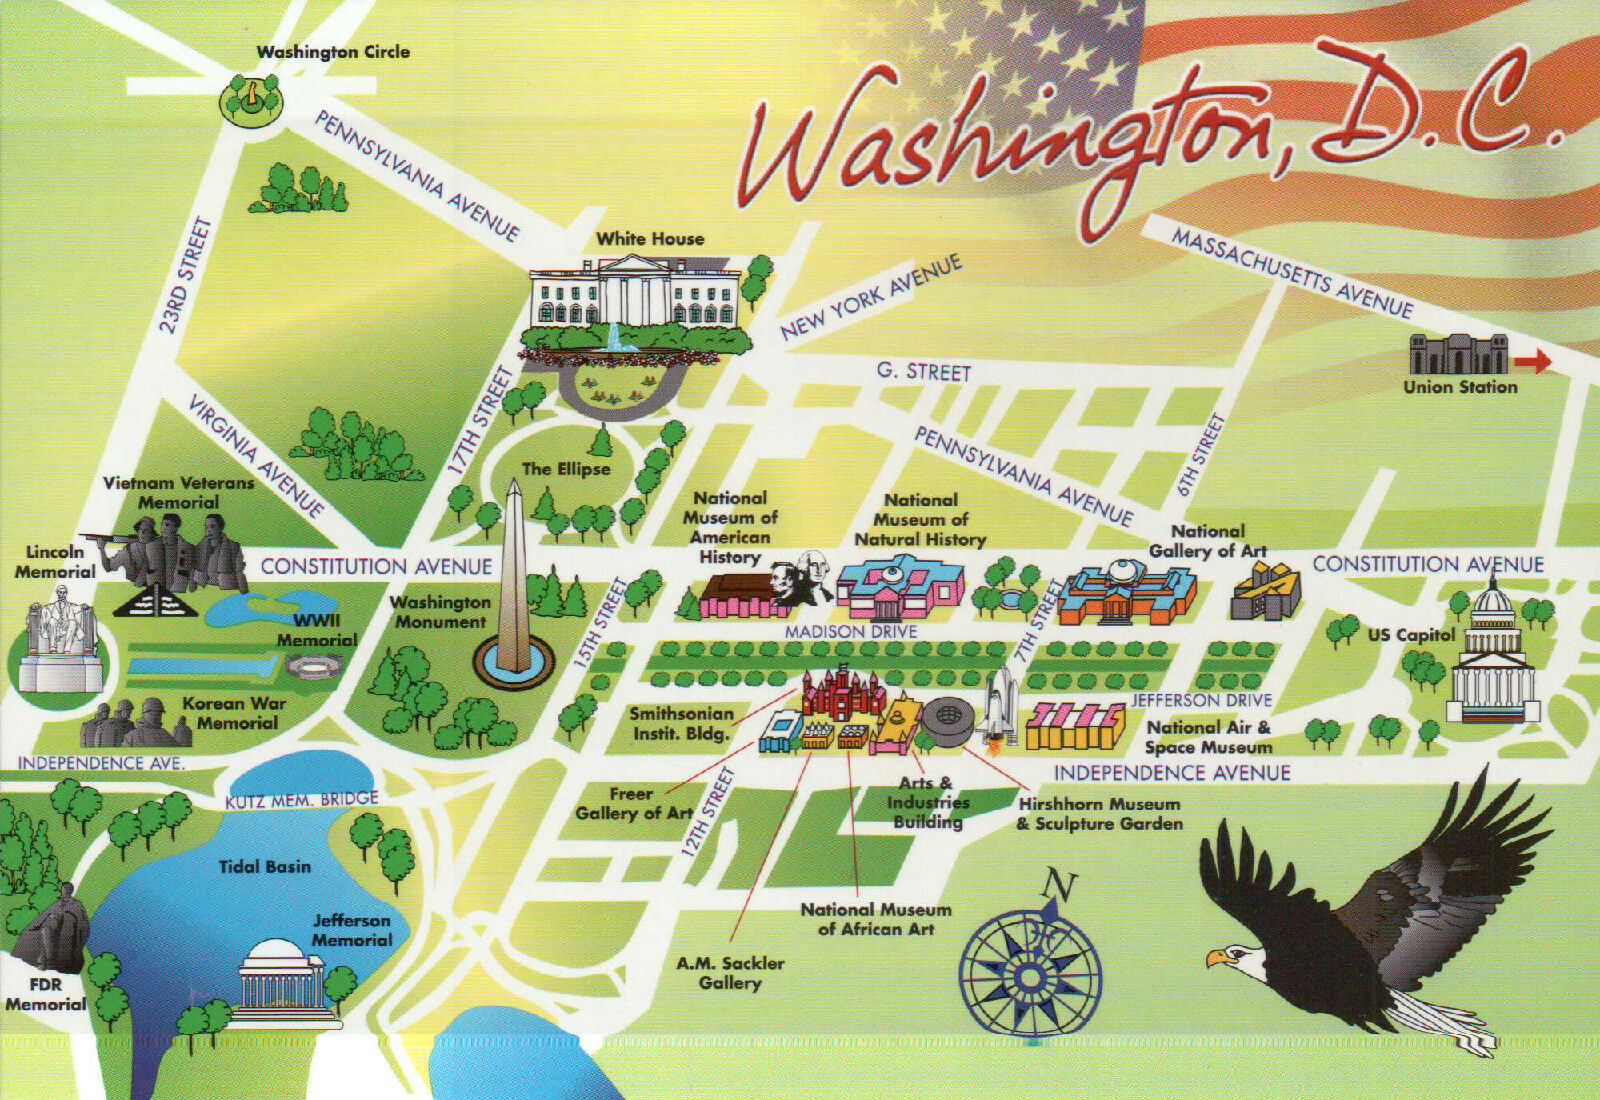 WASHINGTON D.C. STATE Map, National Mall, White House, US Capitol 5 ...